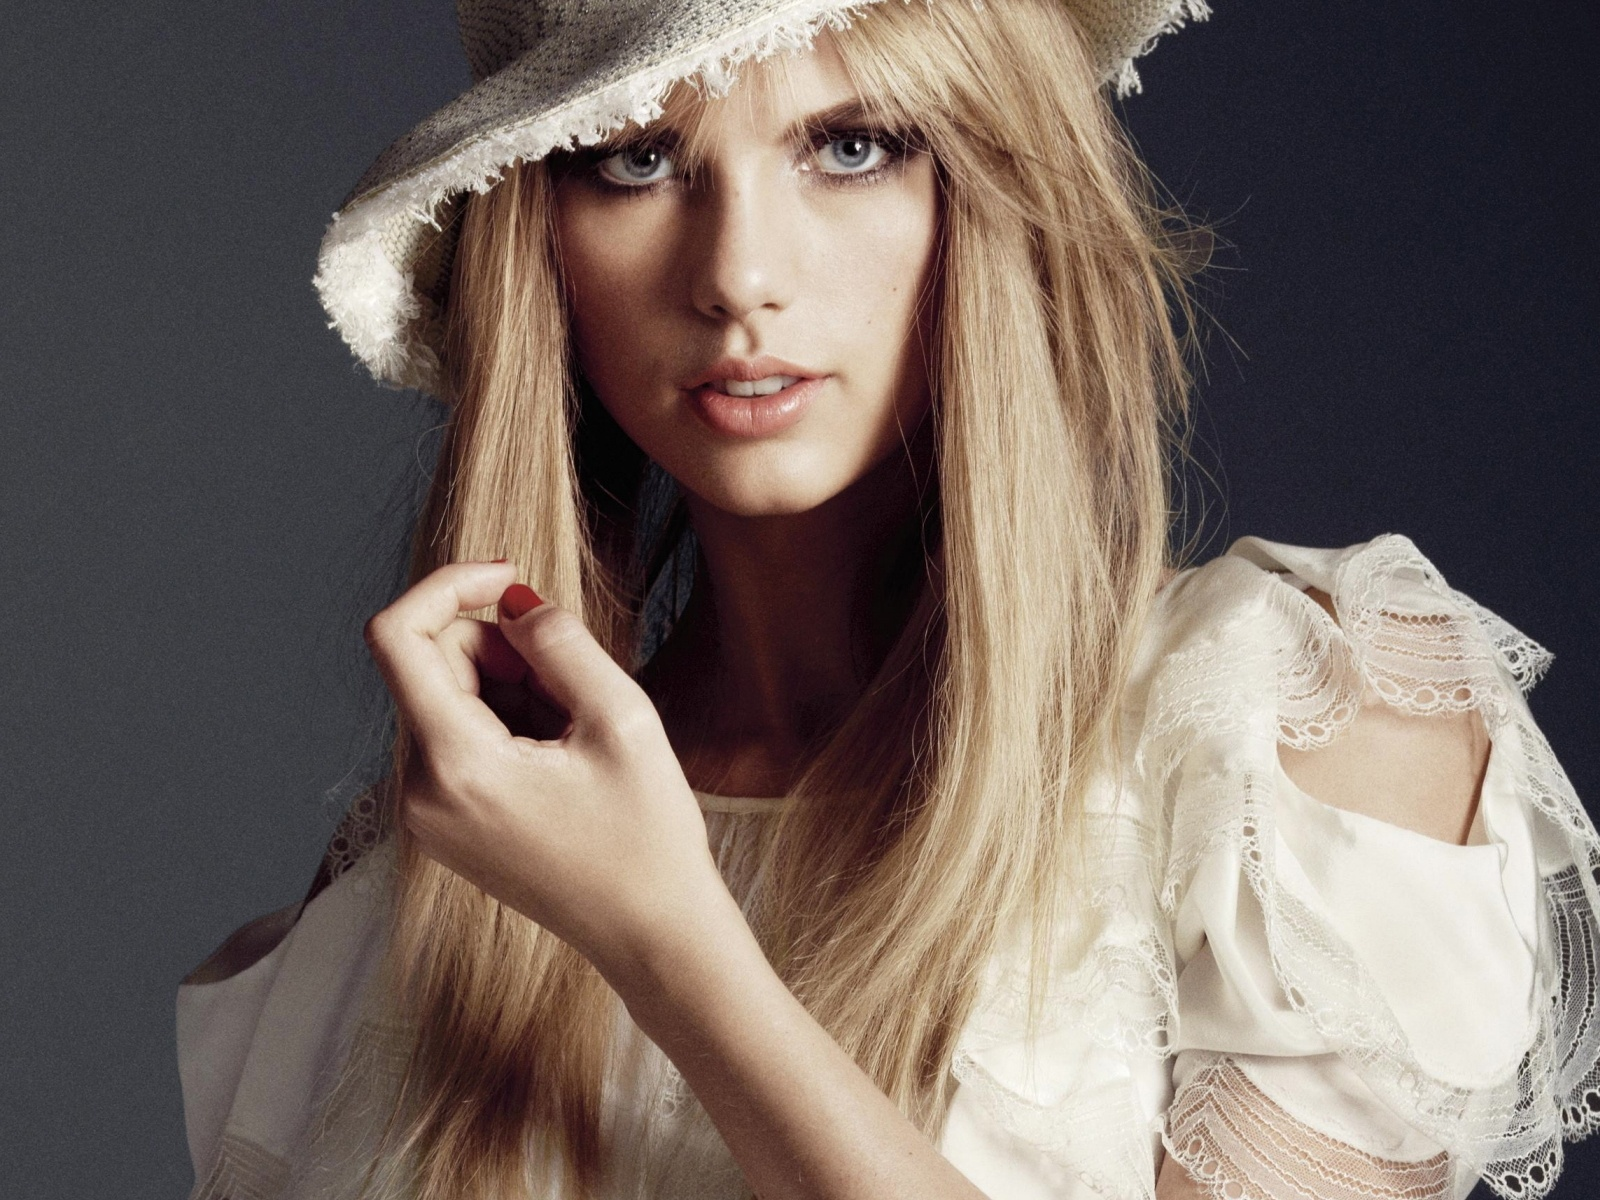 Beautiful Artist Poster, Taylor Swift in White Dress, the Sweet Princess 1600X1200 free ...